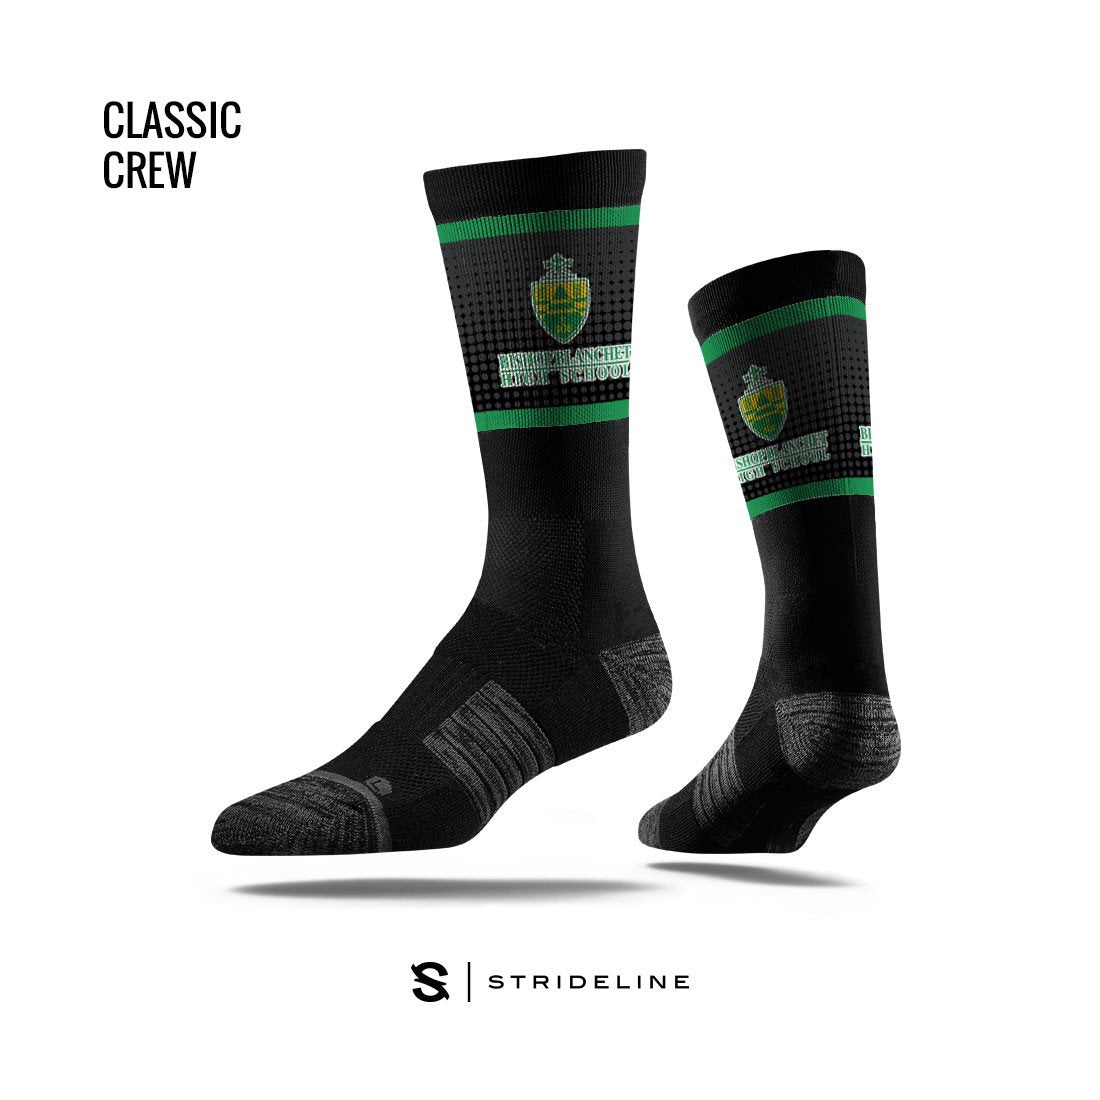 Bishop Blanchet High School Apparel | Socks | Classic